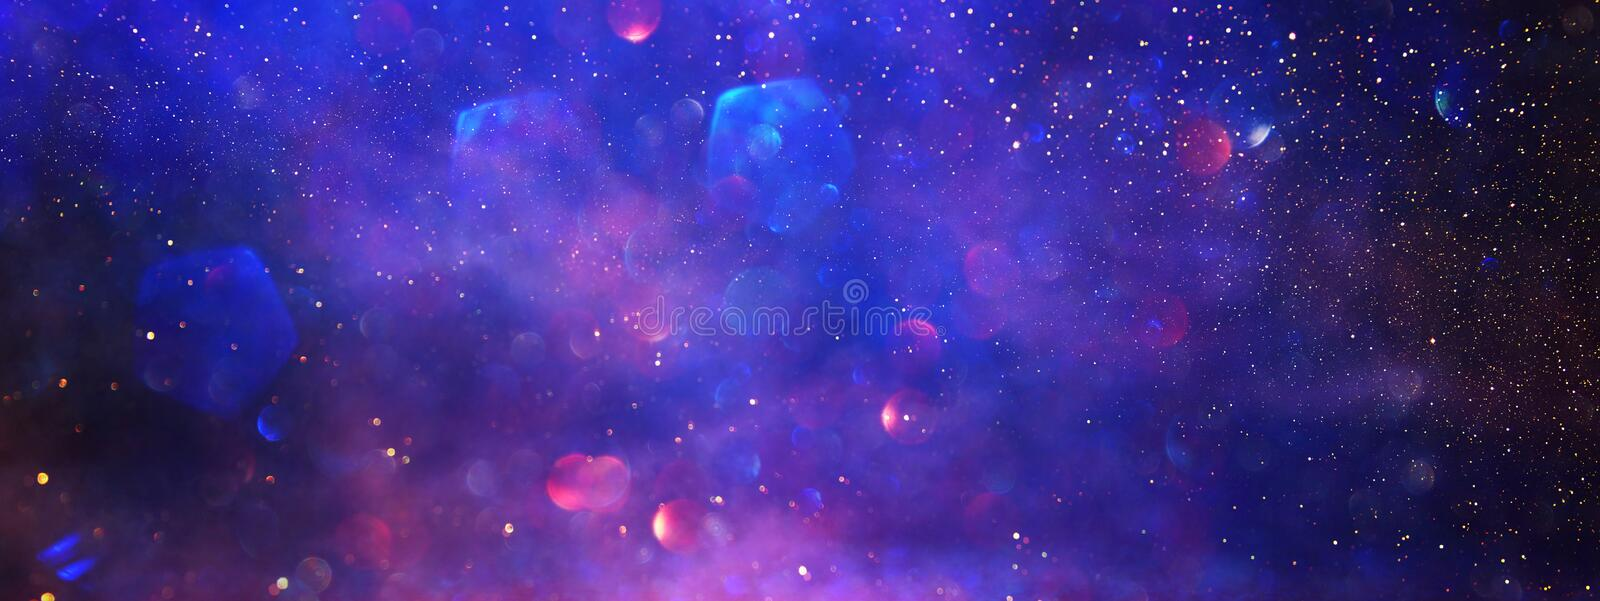 Abstract glitter silver, purple, blue lights background. de-focused. banner stock images